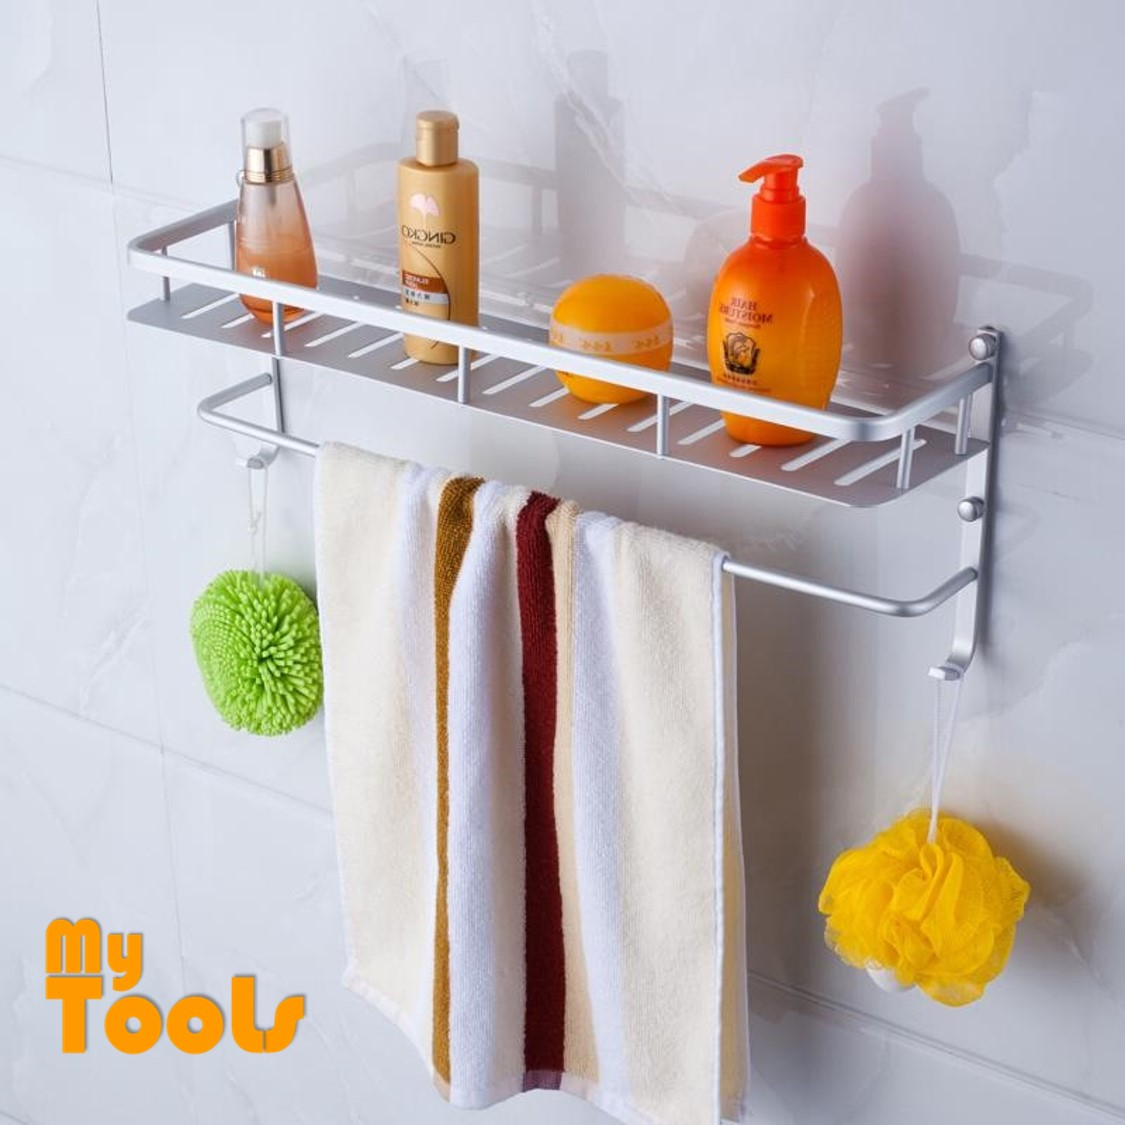 Mytools 60cm Premium Aluminium Bathroom Towel Rack Organizer Storage Hanger Shelf Holder Stand with Hooks